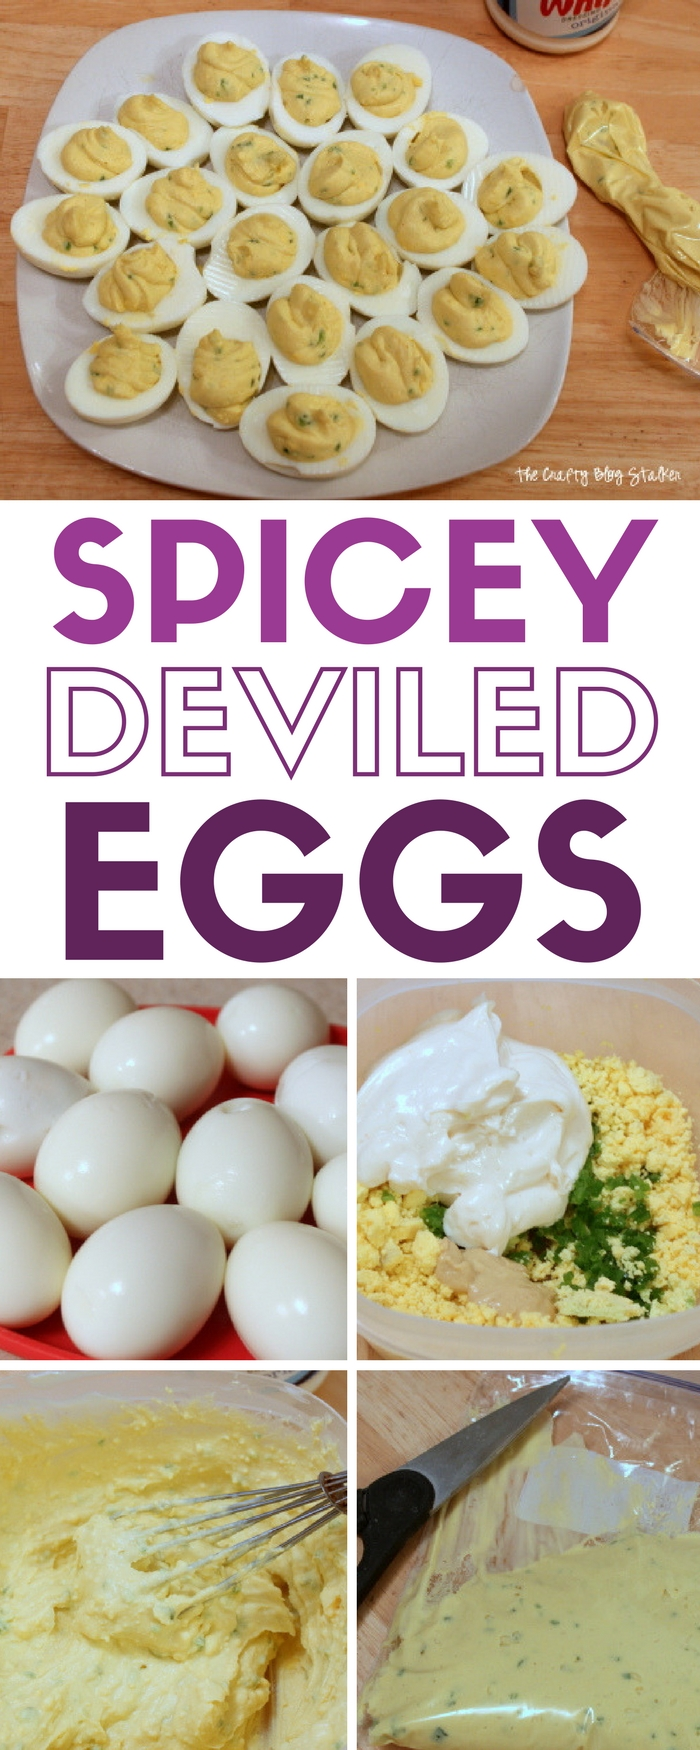 Spicy Deviled Eggs | Easter Dinner | Hard Boiled Eggs | Side Dish Recipes